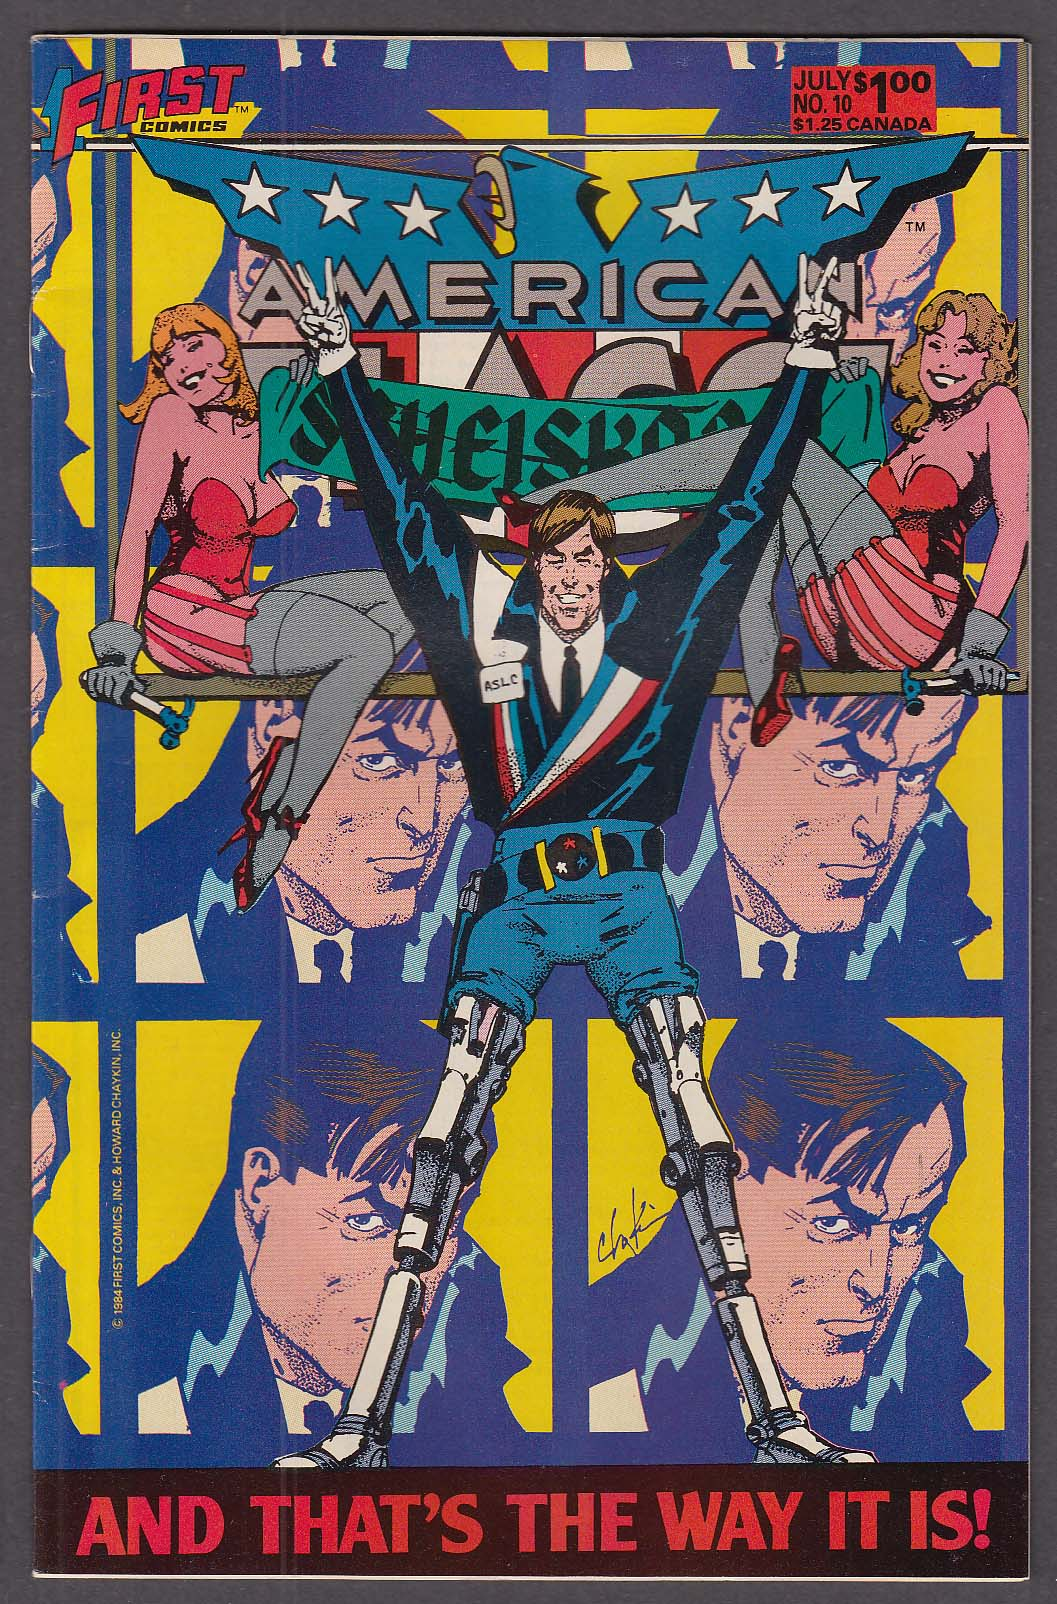 AMERICAN FLAGG! #10 First comic book 7 1984